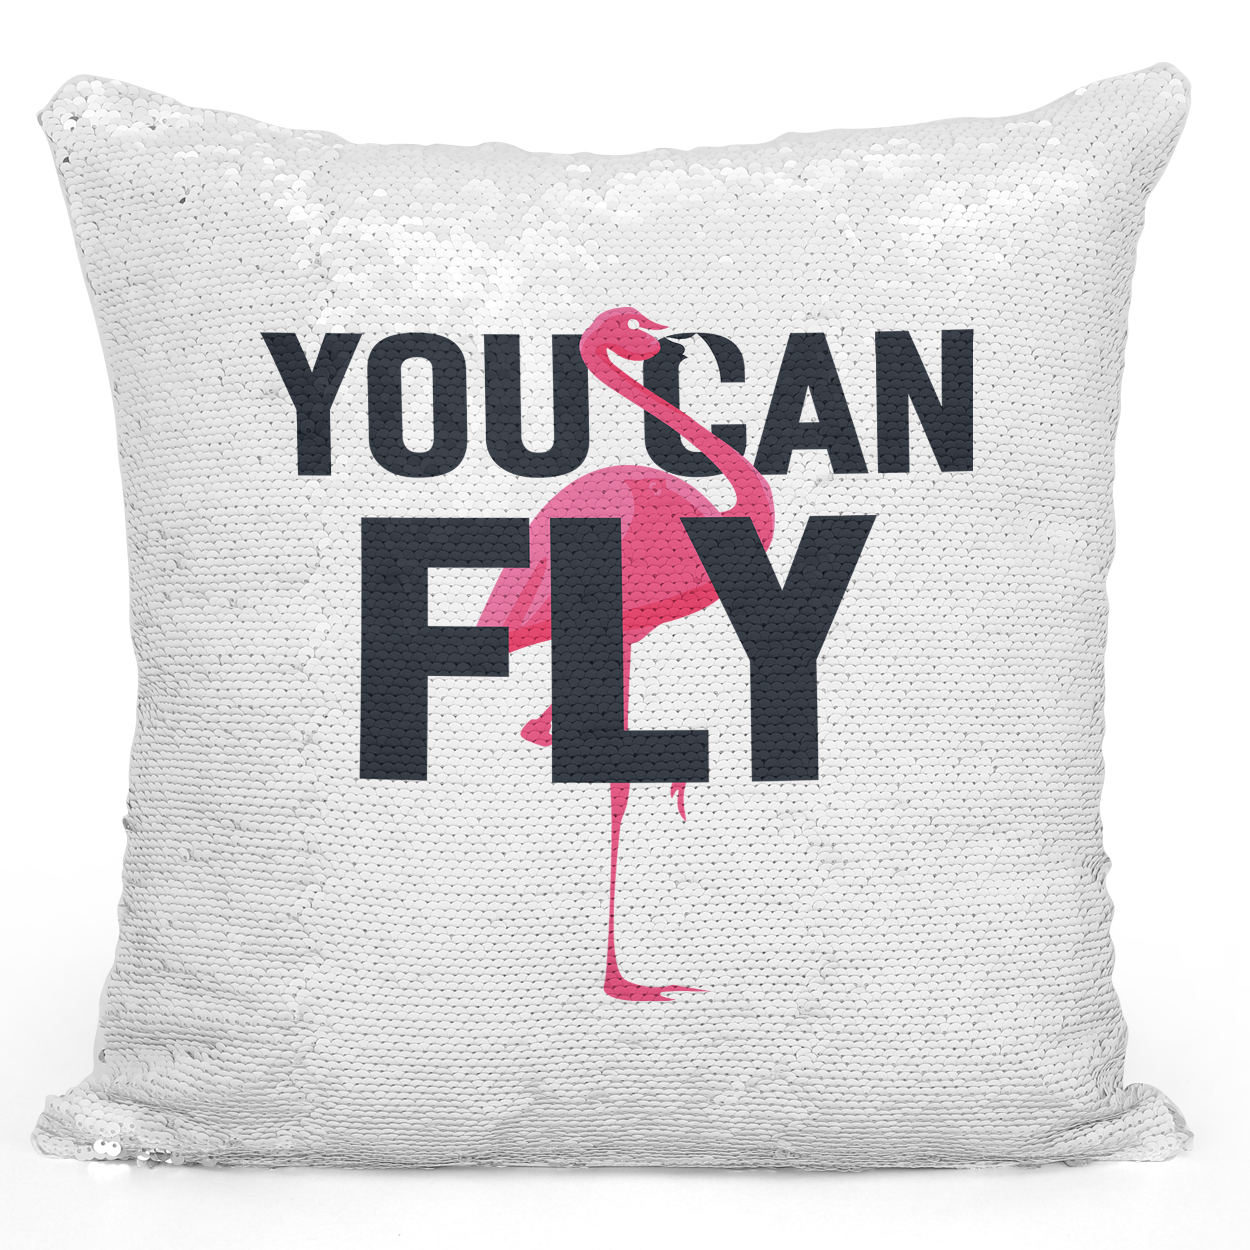 16x16 inch Sequin Throw Pillow Magic Flip Pillow You Can Fly Pink Flamingo Theme Pillow Positive Message Loud Universe